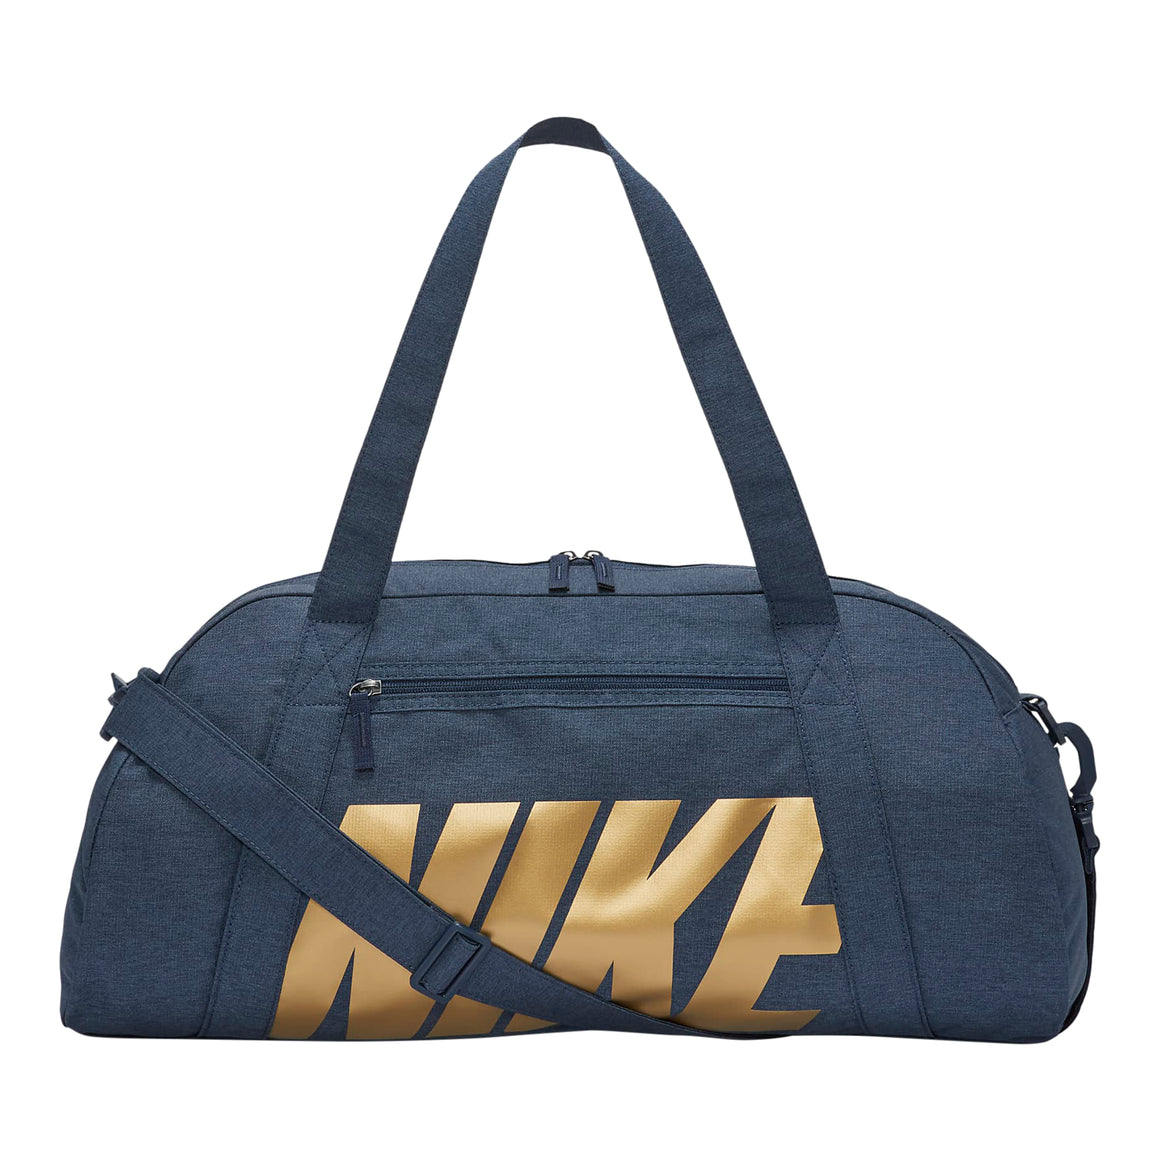 Gym Club Training Duffle for Women in Obsidian/Metallic Gold